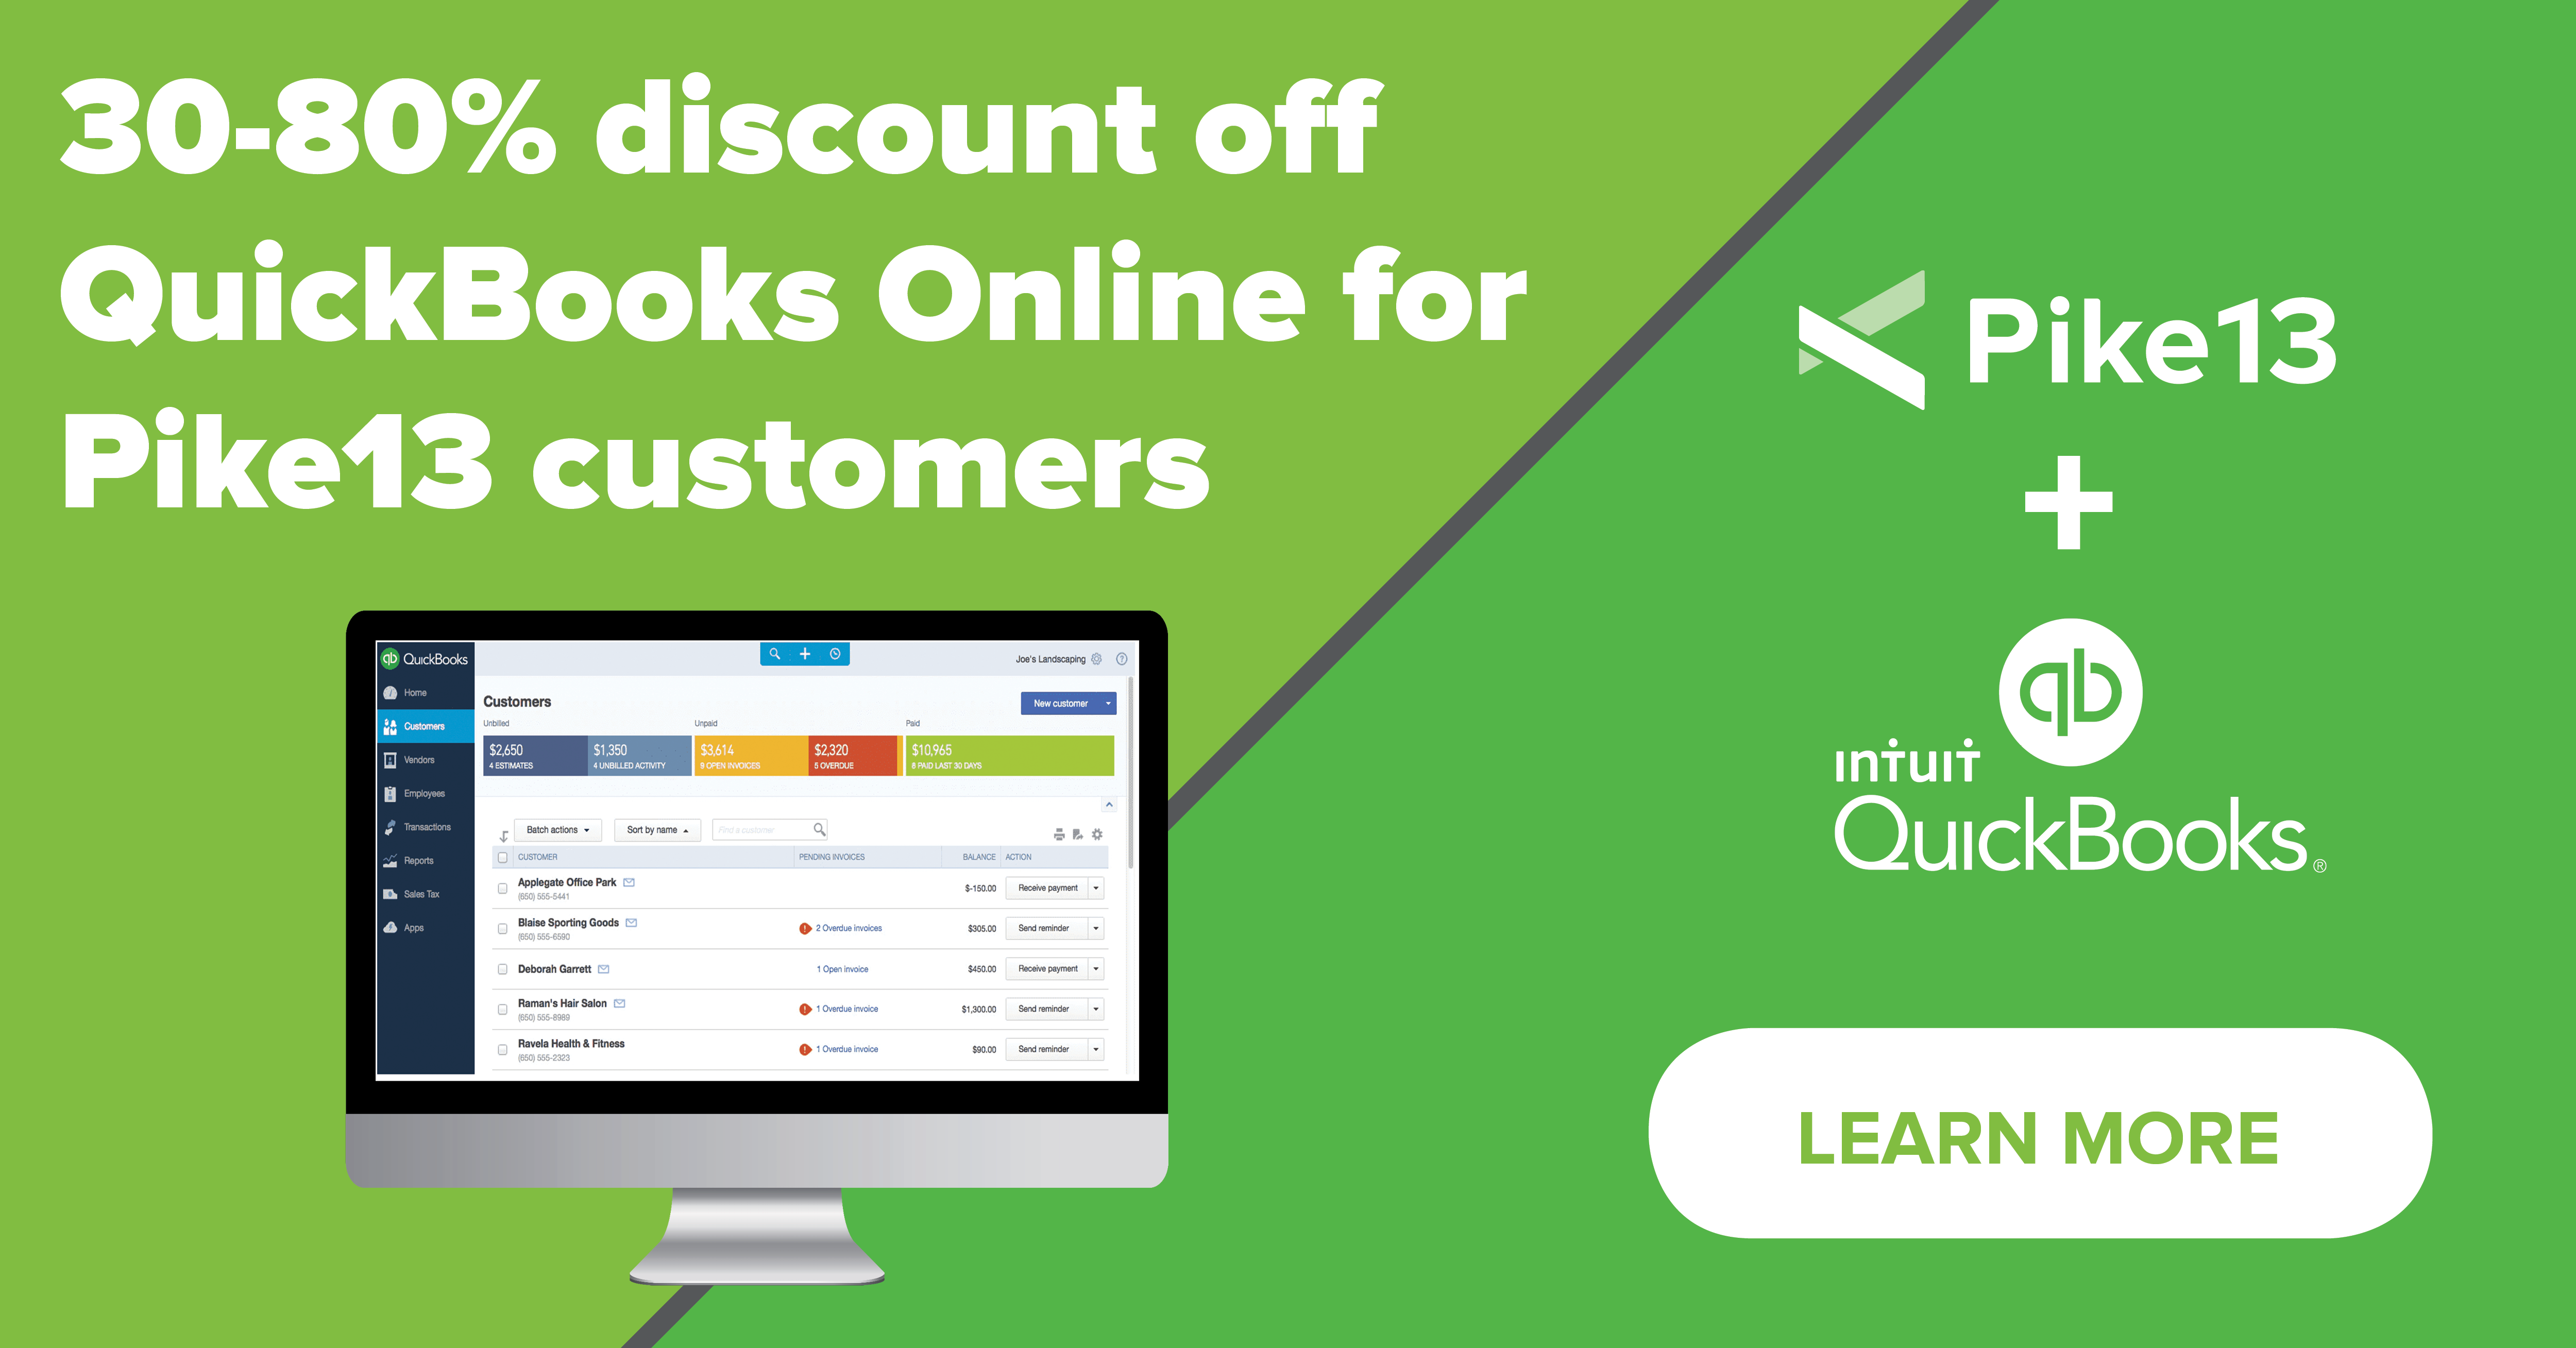 Pike13 Customers Receive 30%-80% off QuickBooks Online